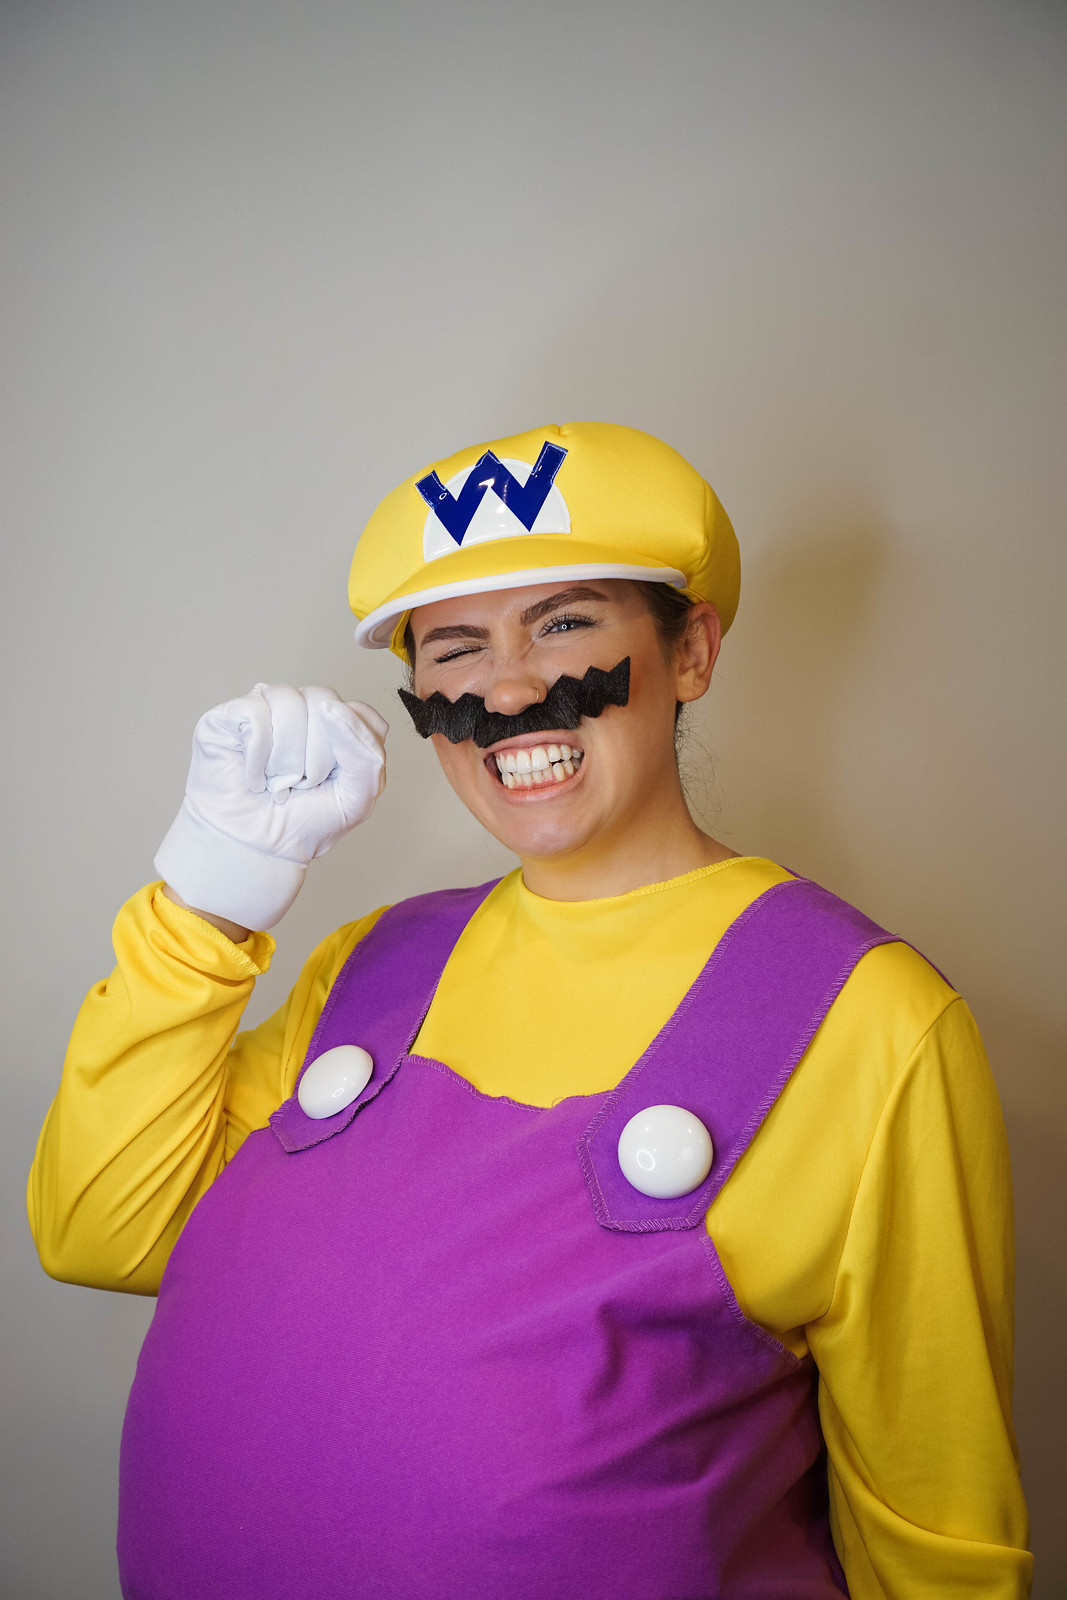 Mario Kart Costumes | Super Mario Brothers Costumes | Wario Cosplay | The Funniest Group Halloween Costumes for your Virtual Party | Zoom Halloween Costumes | Virtual Halloween Costume Ideas | Gamer Cosplay | Nintendo Costume